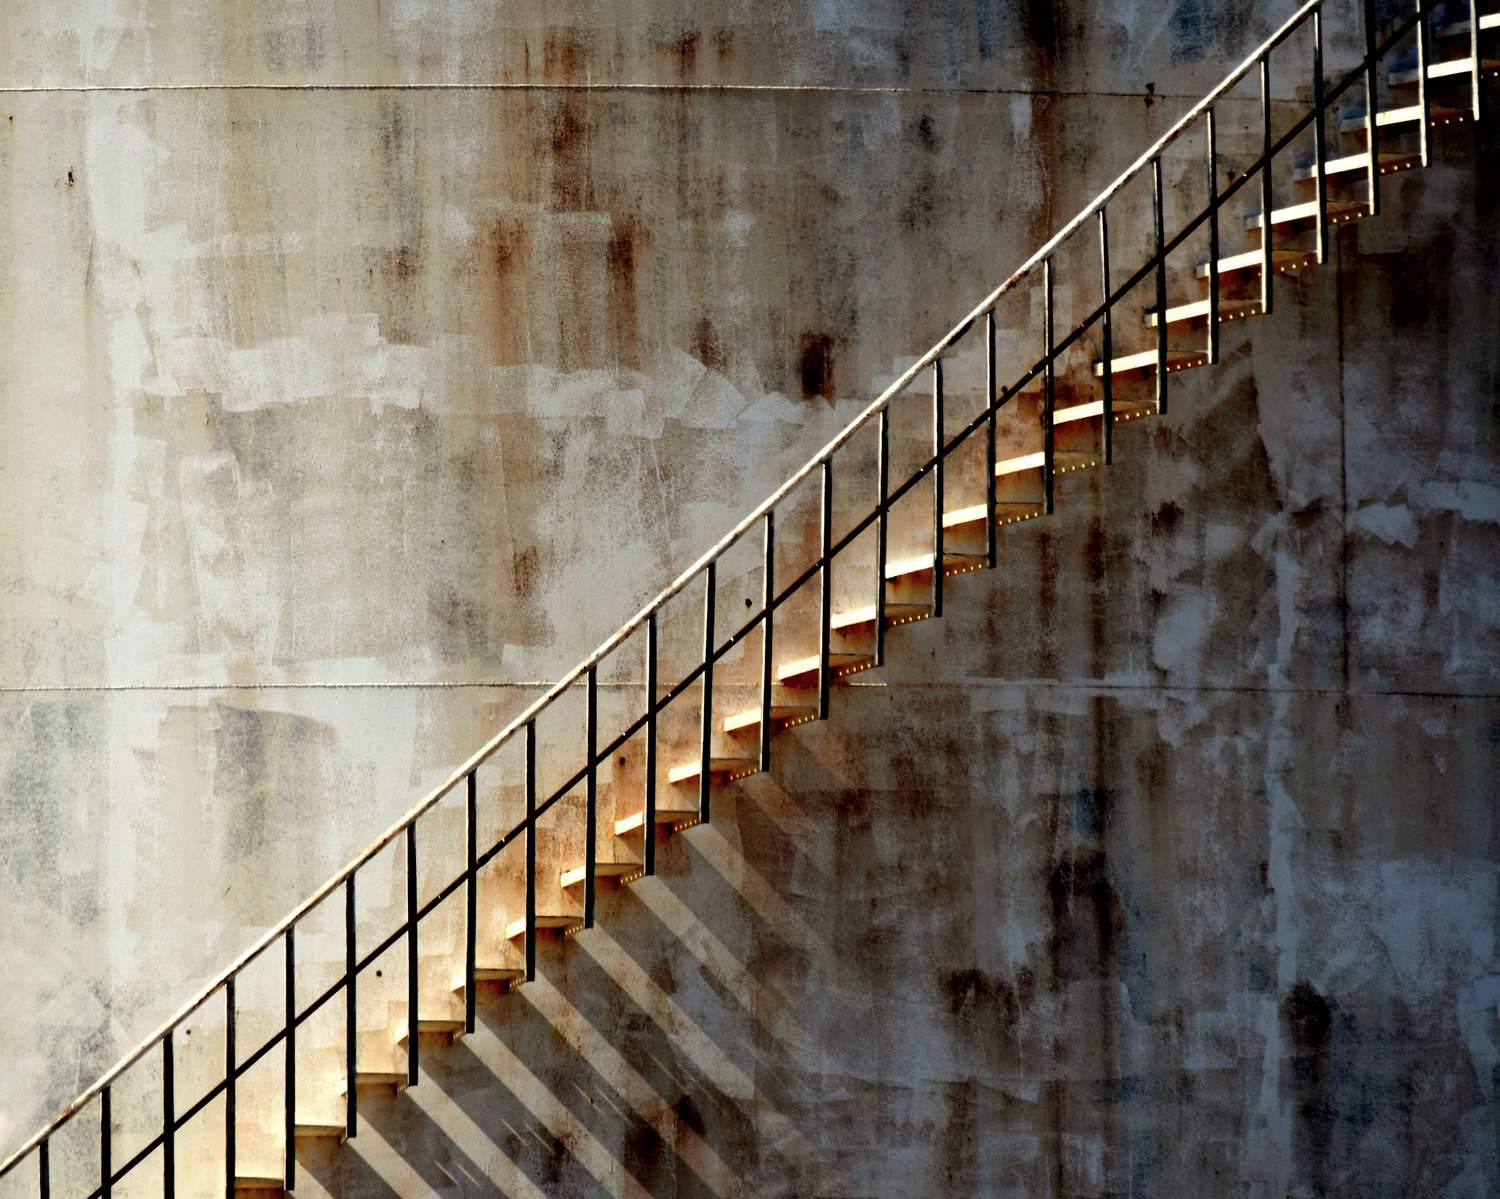 Guntis_Lauzums_Abstract series_Staircase 2017_3.JPG